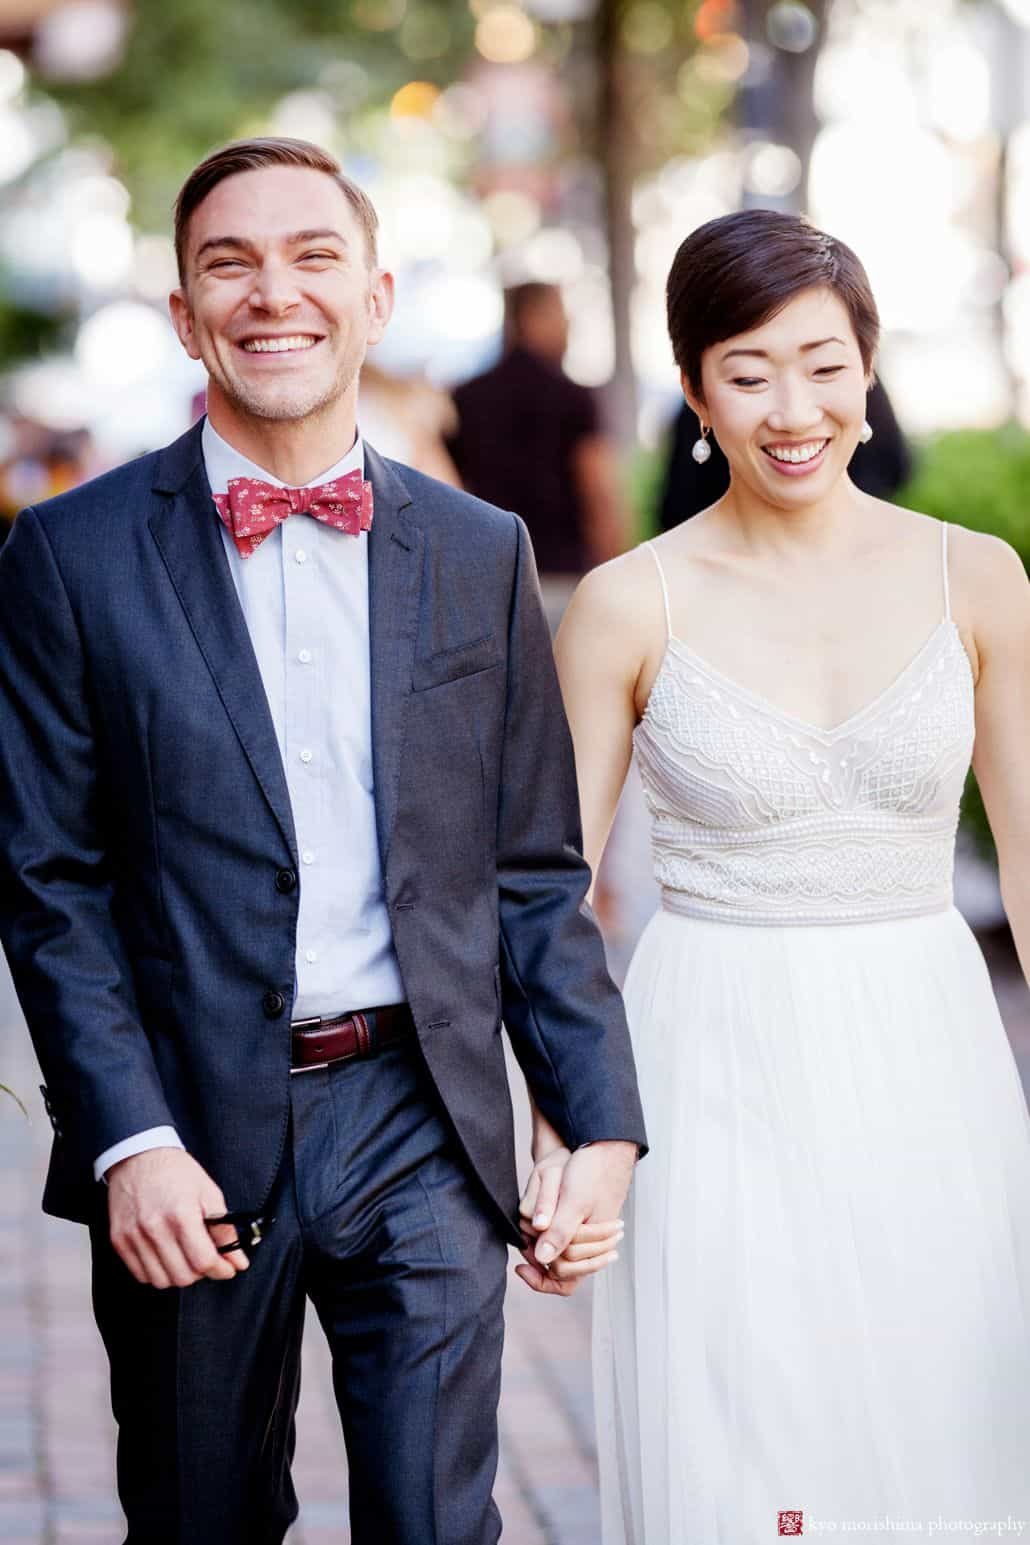 Candid wedding portrait of bicultural couple walking down city street on September wedding day; groom wears red bow tie